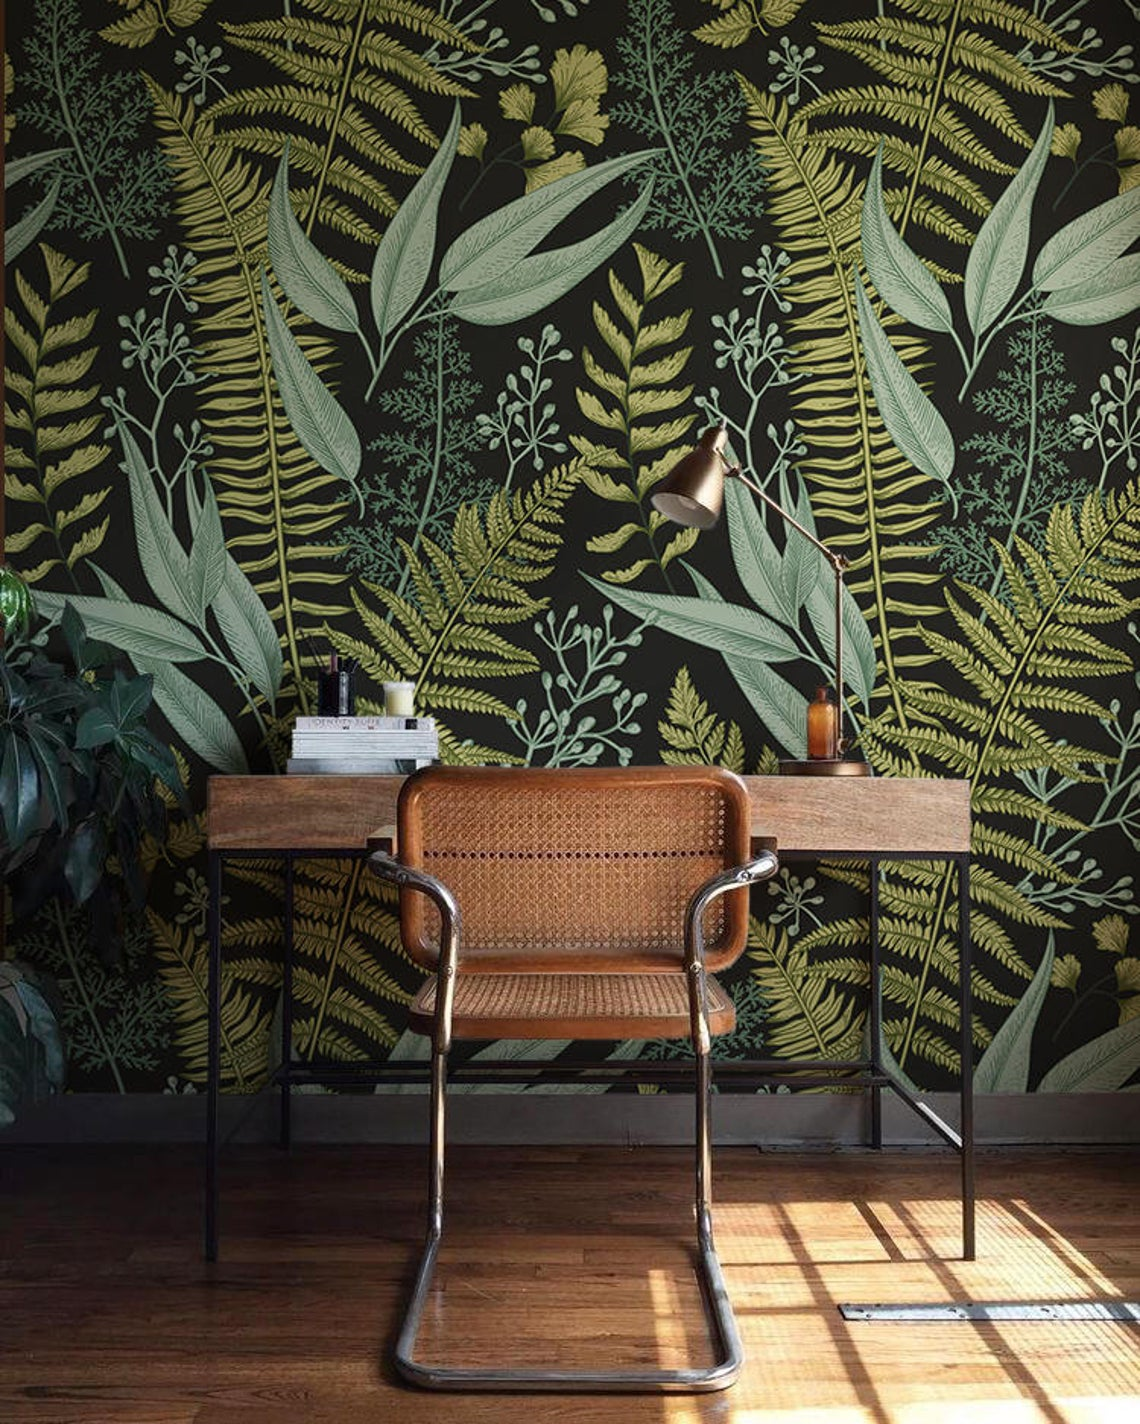 Nature Inspired Wallpaper Designs That Bring Color And Beauty Into Our Homes